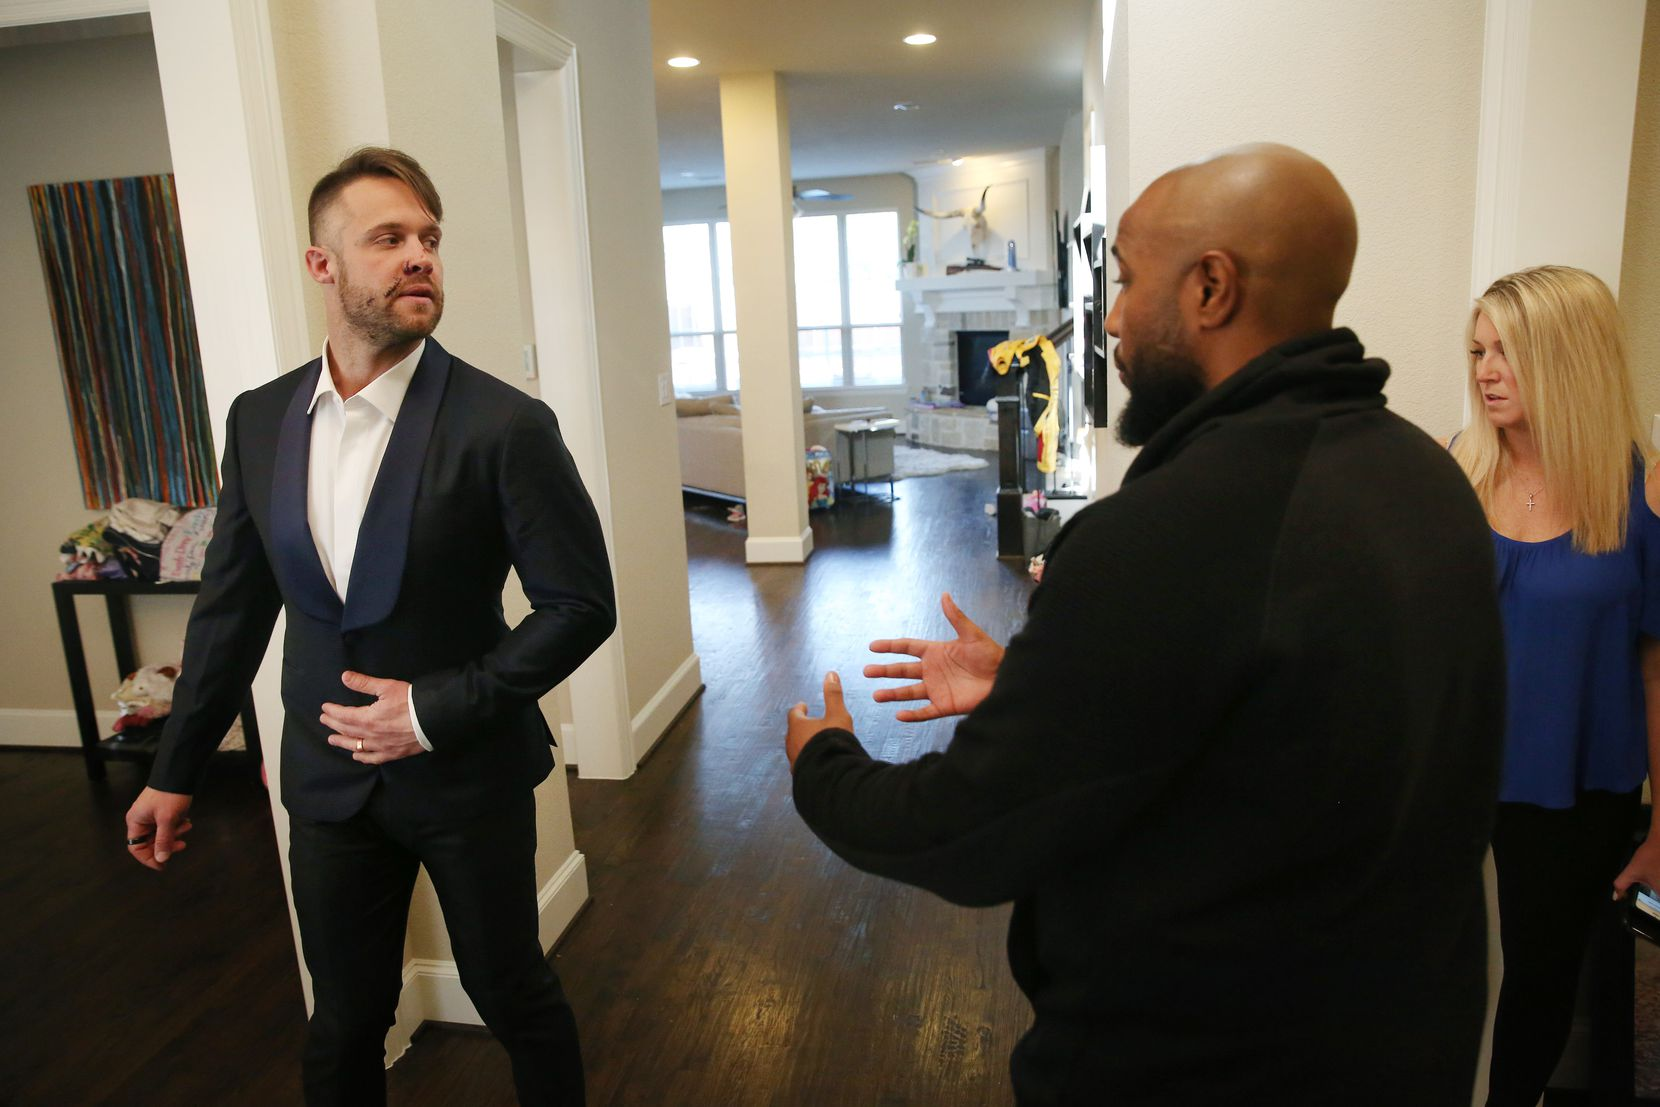 With scars on his face from a recent dog attack, David Vobora (left) preps for speaking engagements by getting fitted for a tux, with the help of bespoke concierge Jason Smith and David's wife, Sarah Vobora, at his home in The Colony.